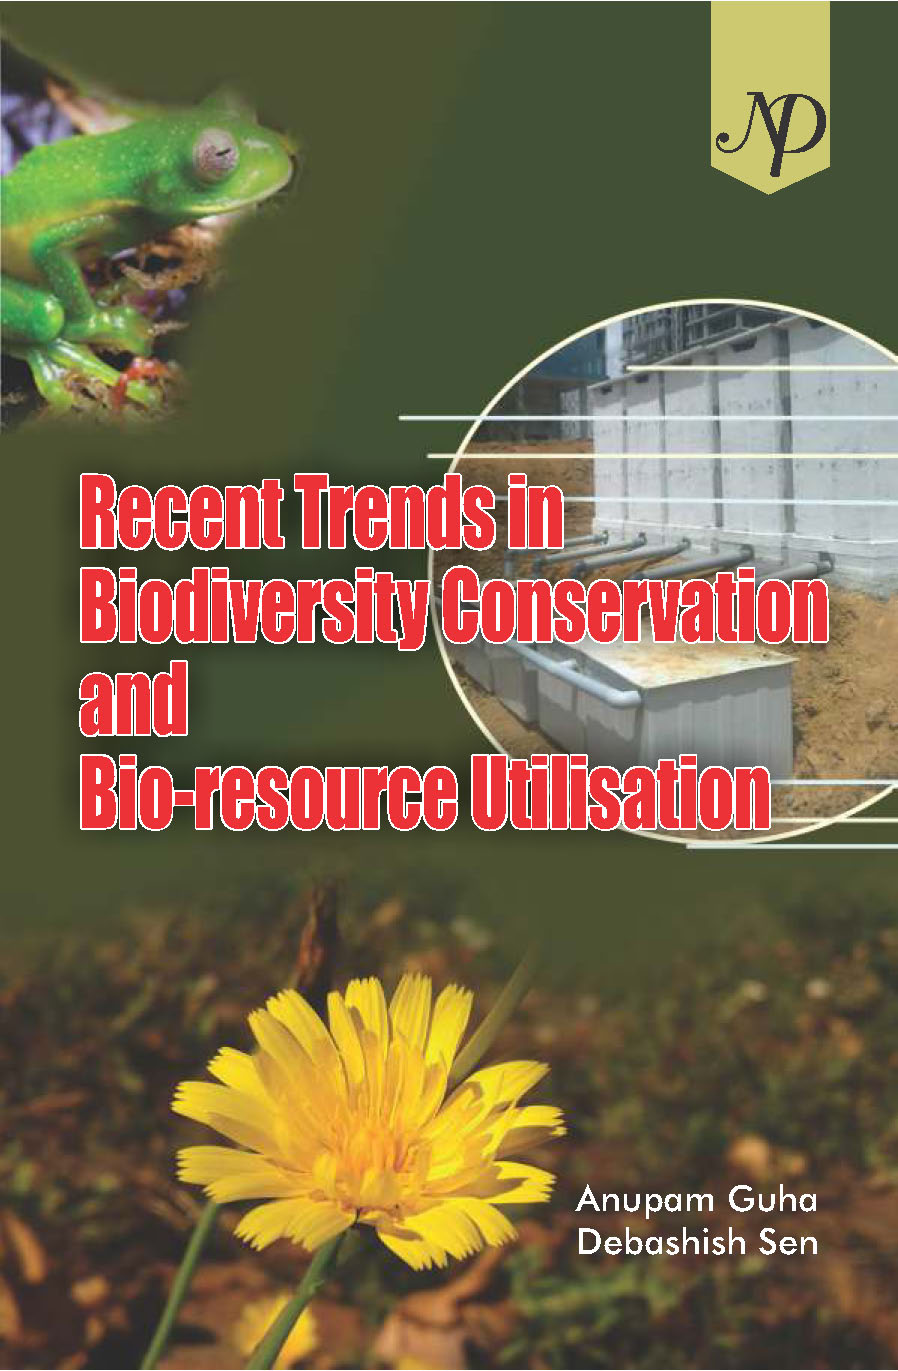 Recent trend in Biodiversity conservation cover.jpg